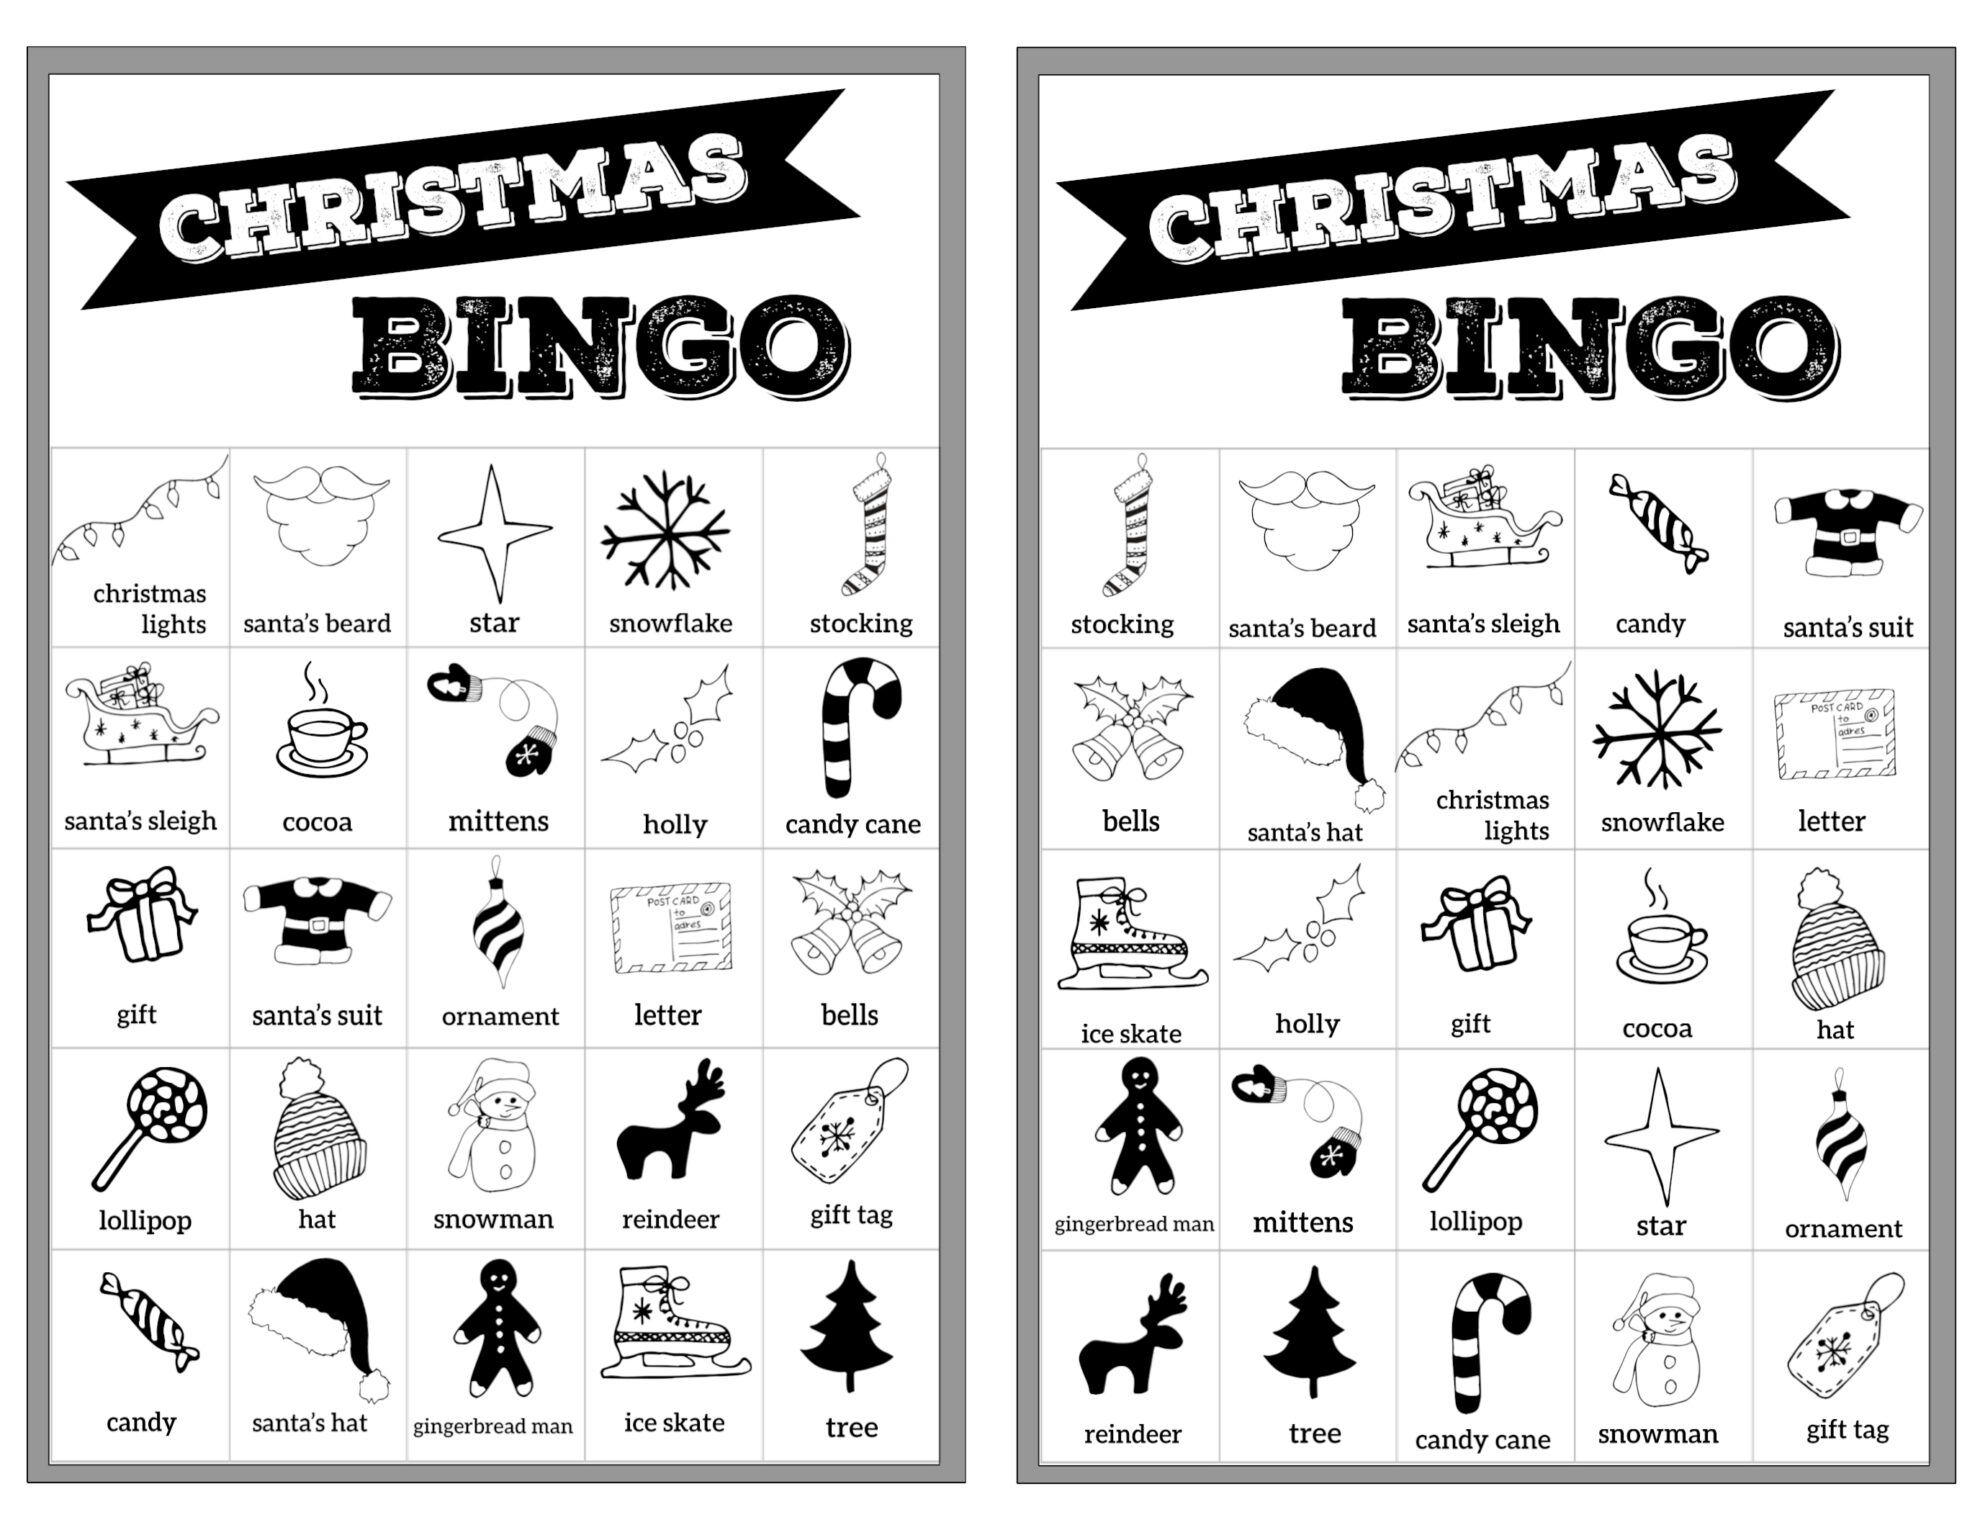 Free Christmas Bingo Printable Cards